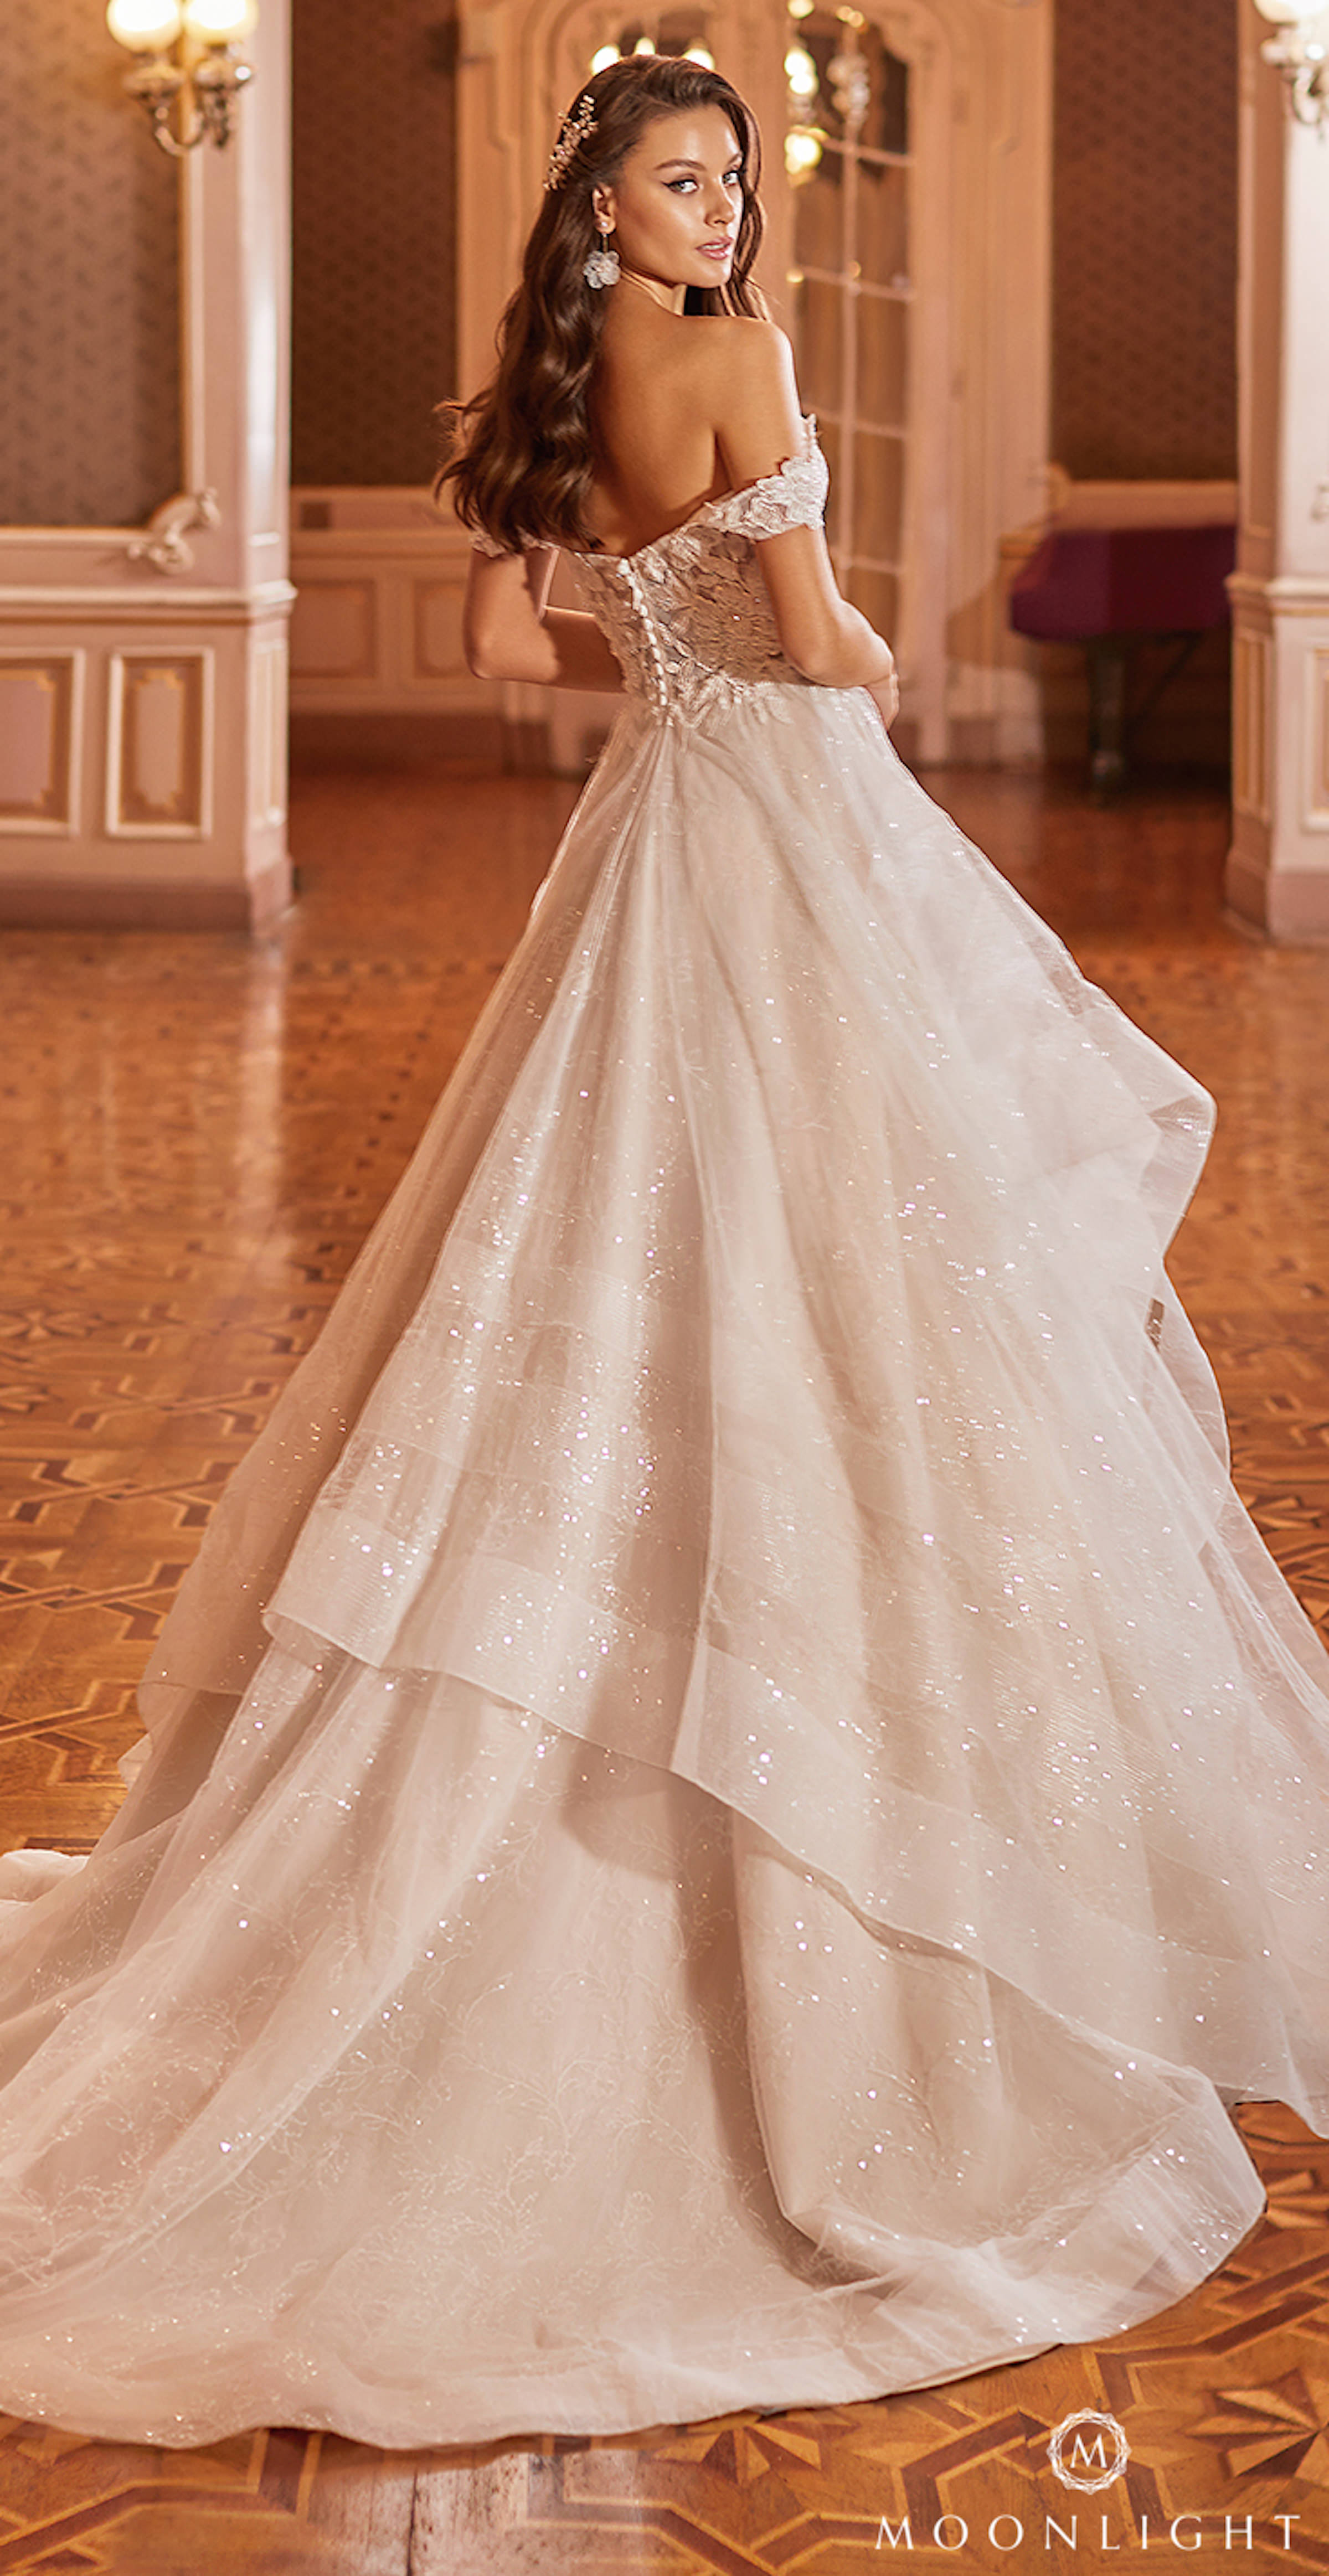 Gilded X Moonlight Collection Fall 2021 Wedding Dresses - J6823